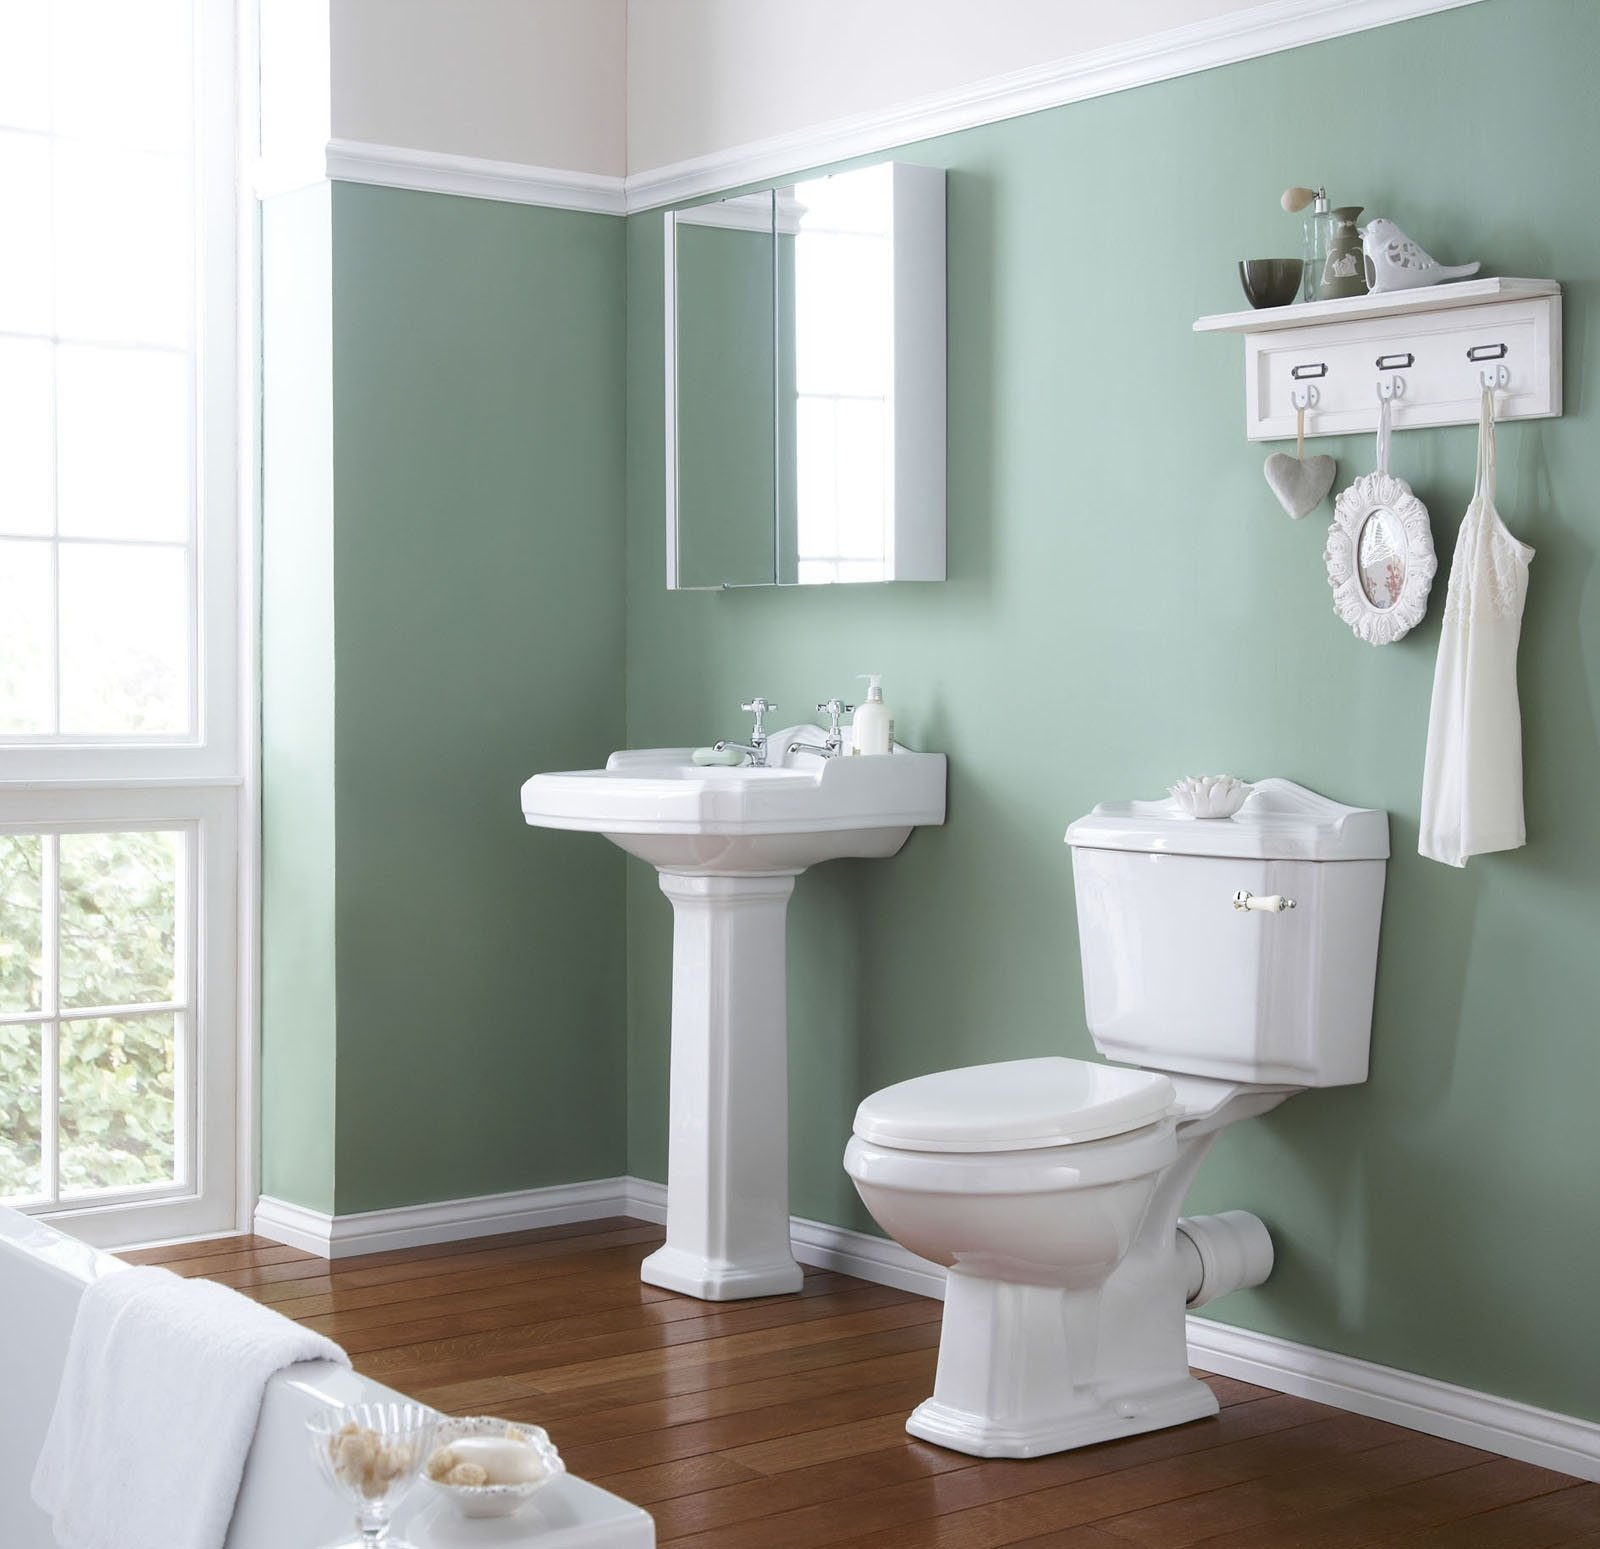 paint colors for master bathroom – for bathrooms that are painted a